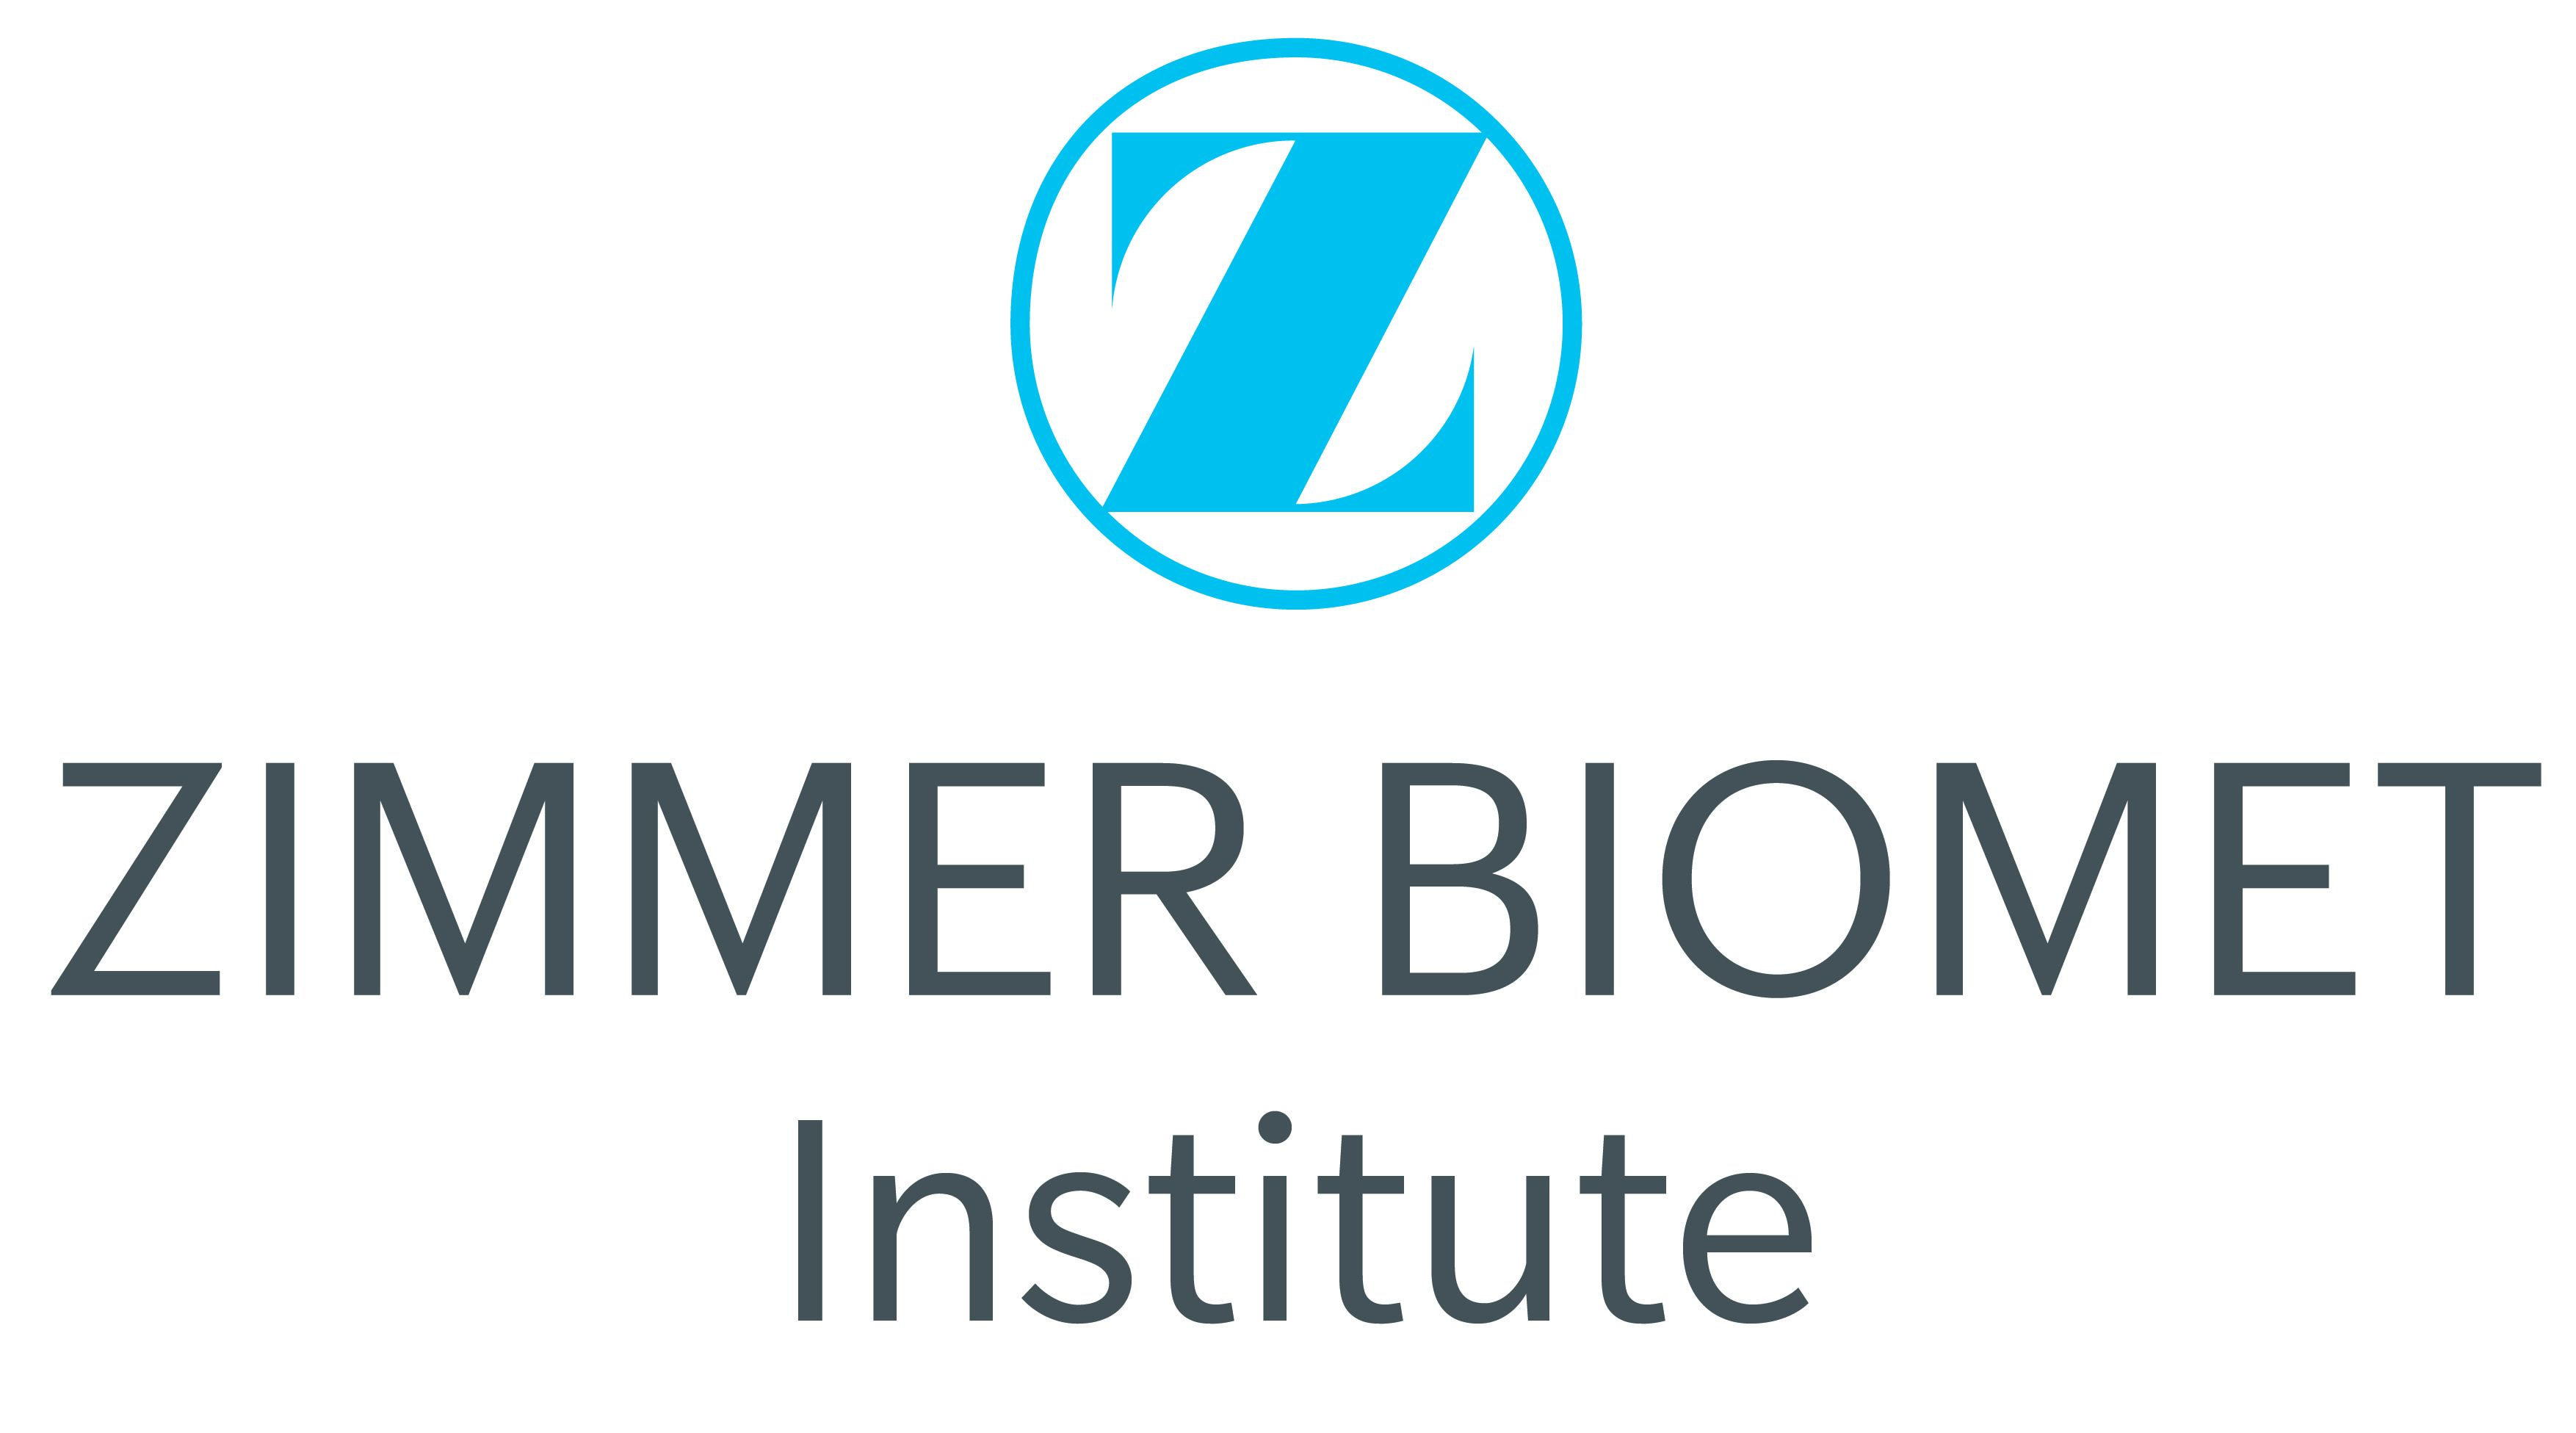 Logo_for_symposium_Zimmer_Biomet_Institute_-_vertical.jpg